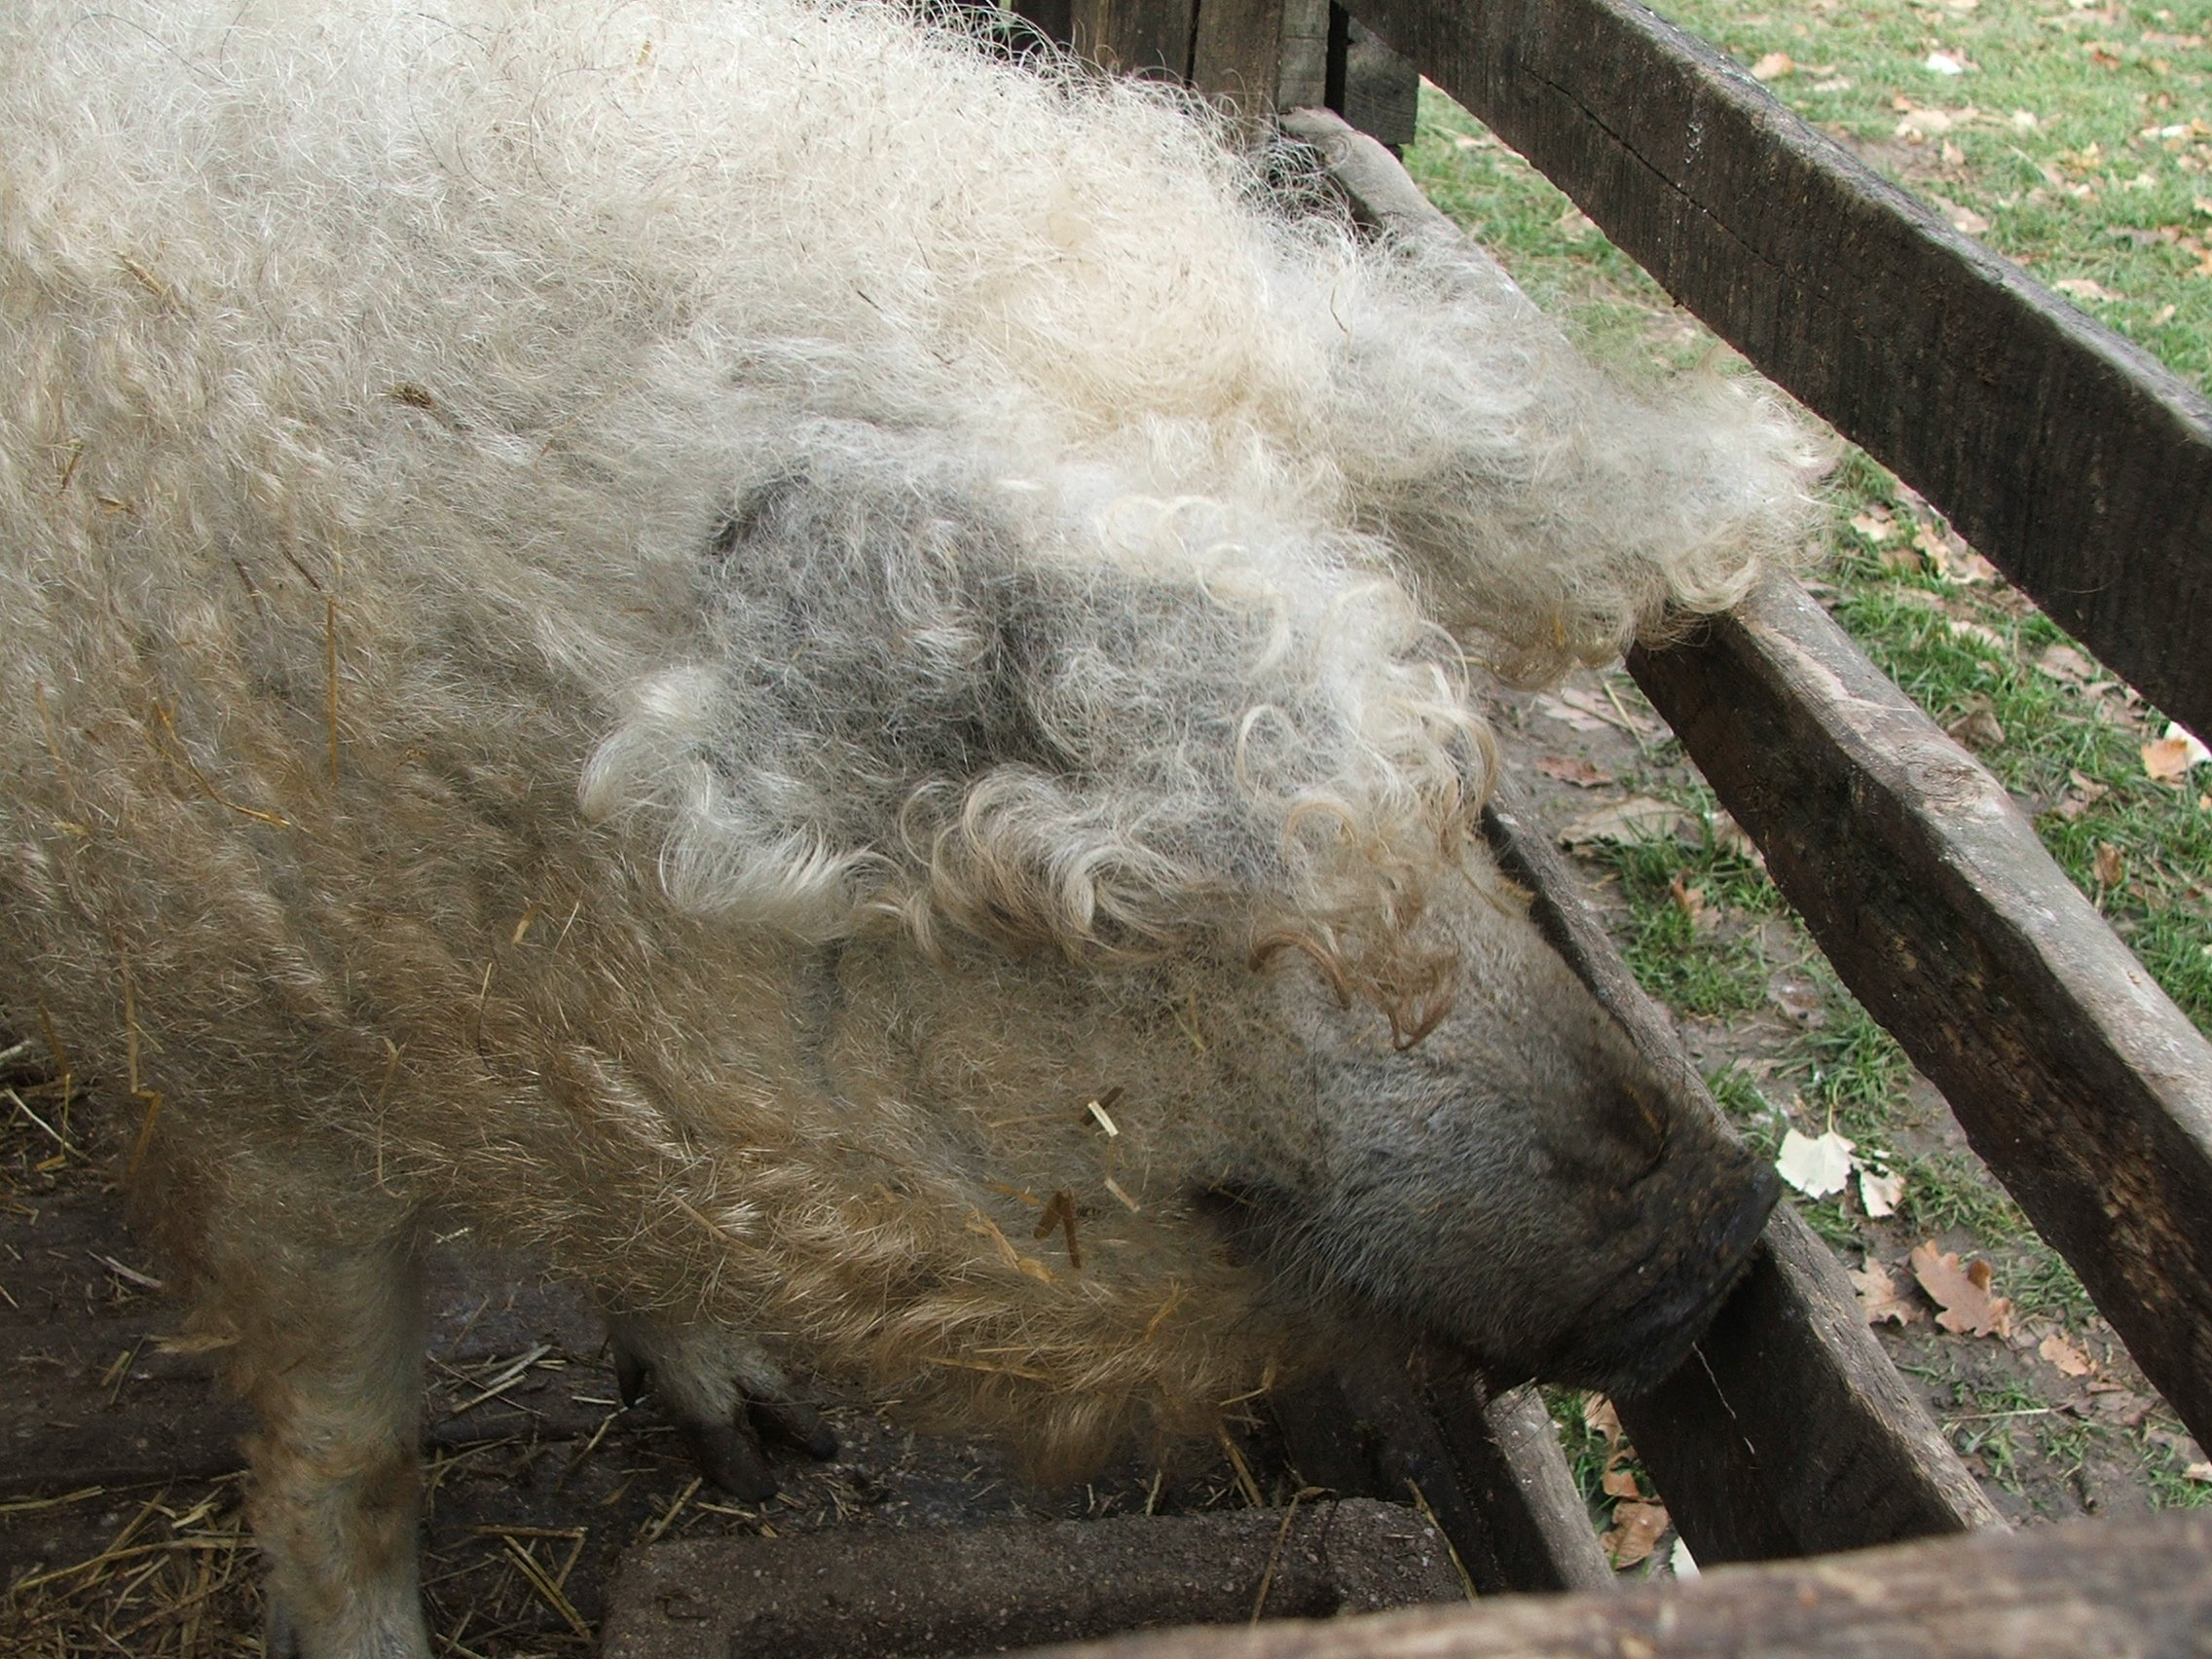 Mangalica: Sheep or Pig? | Animals Zone